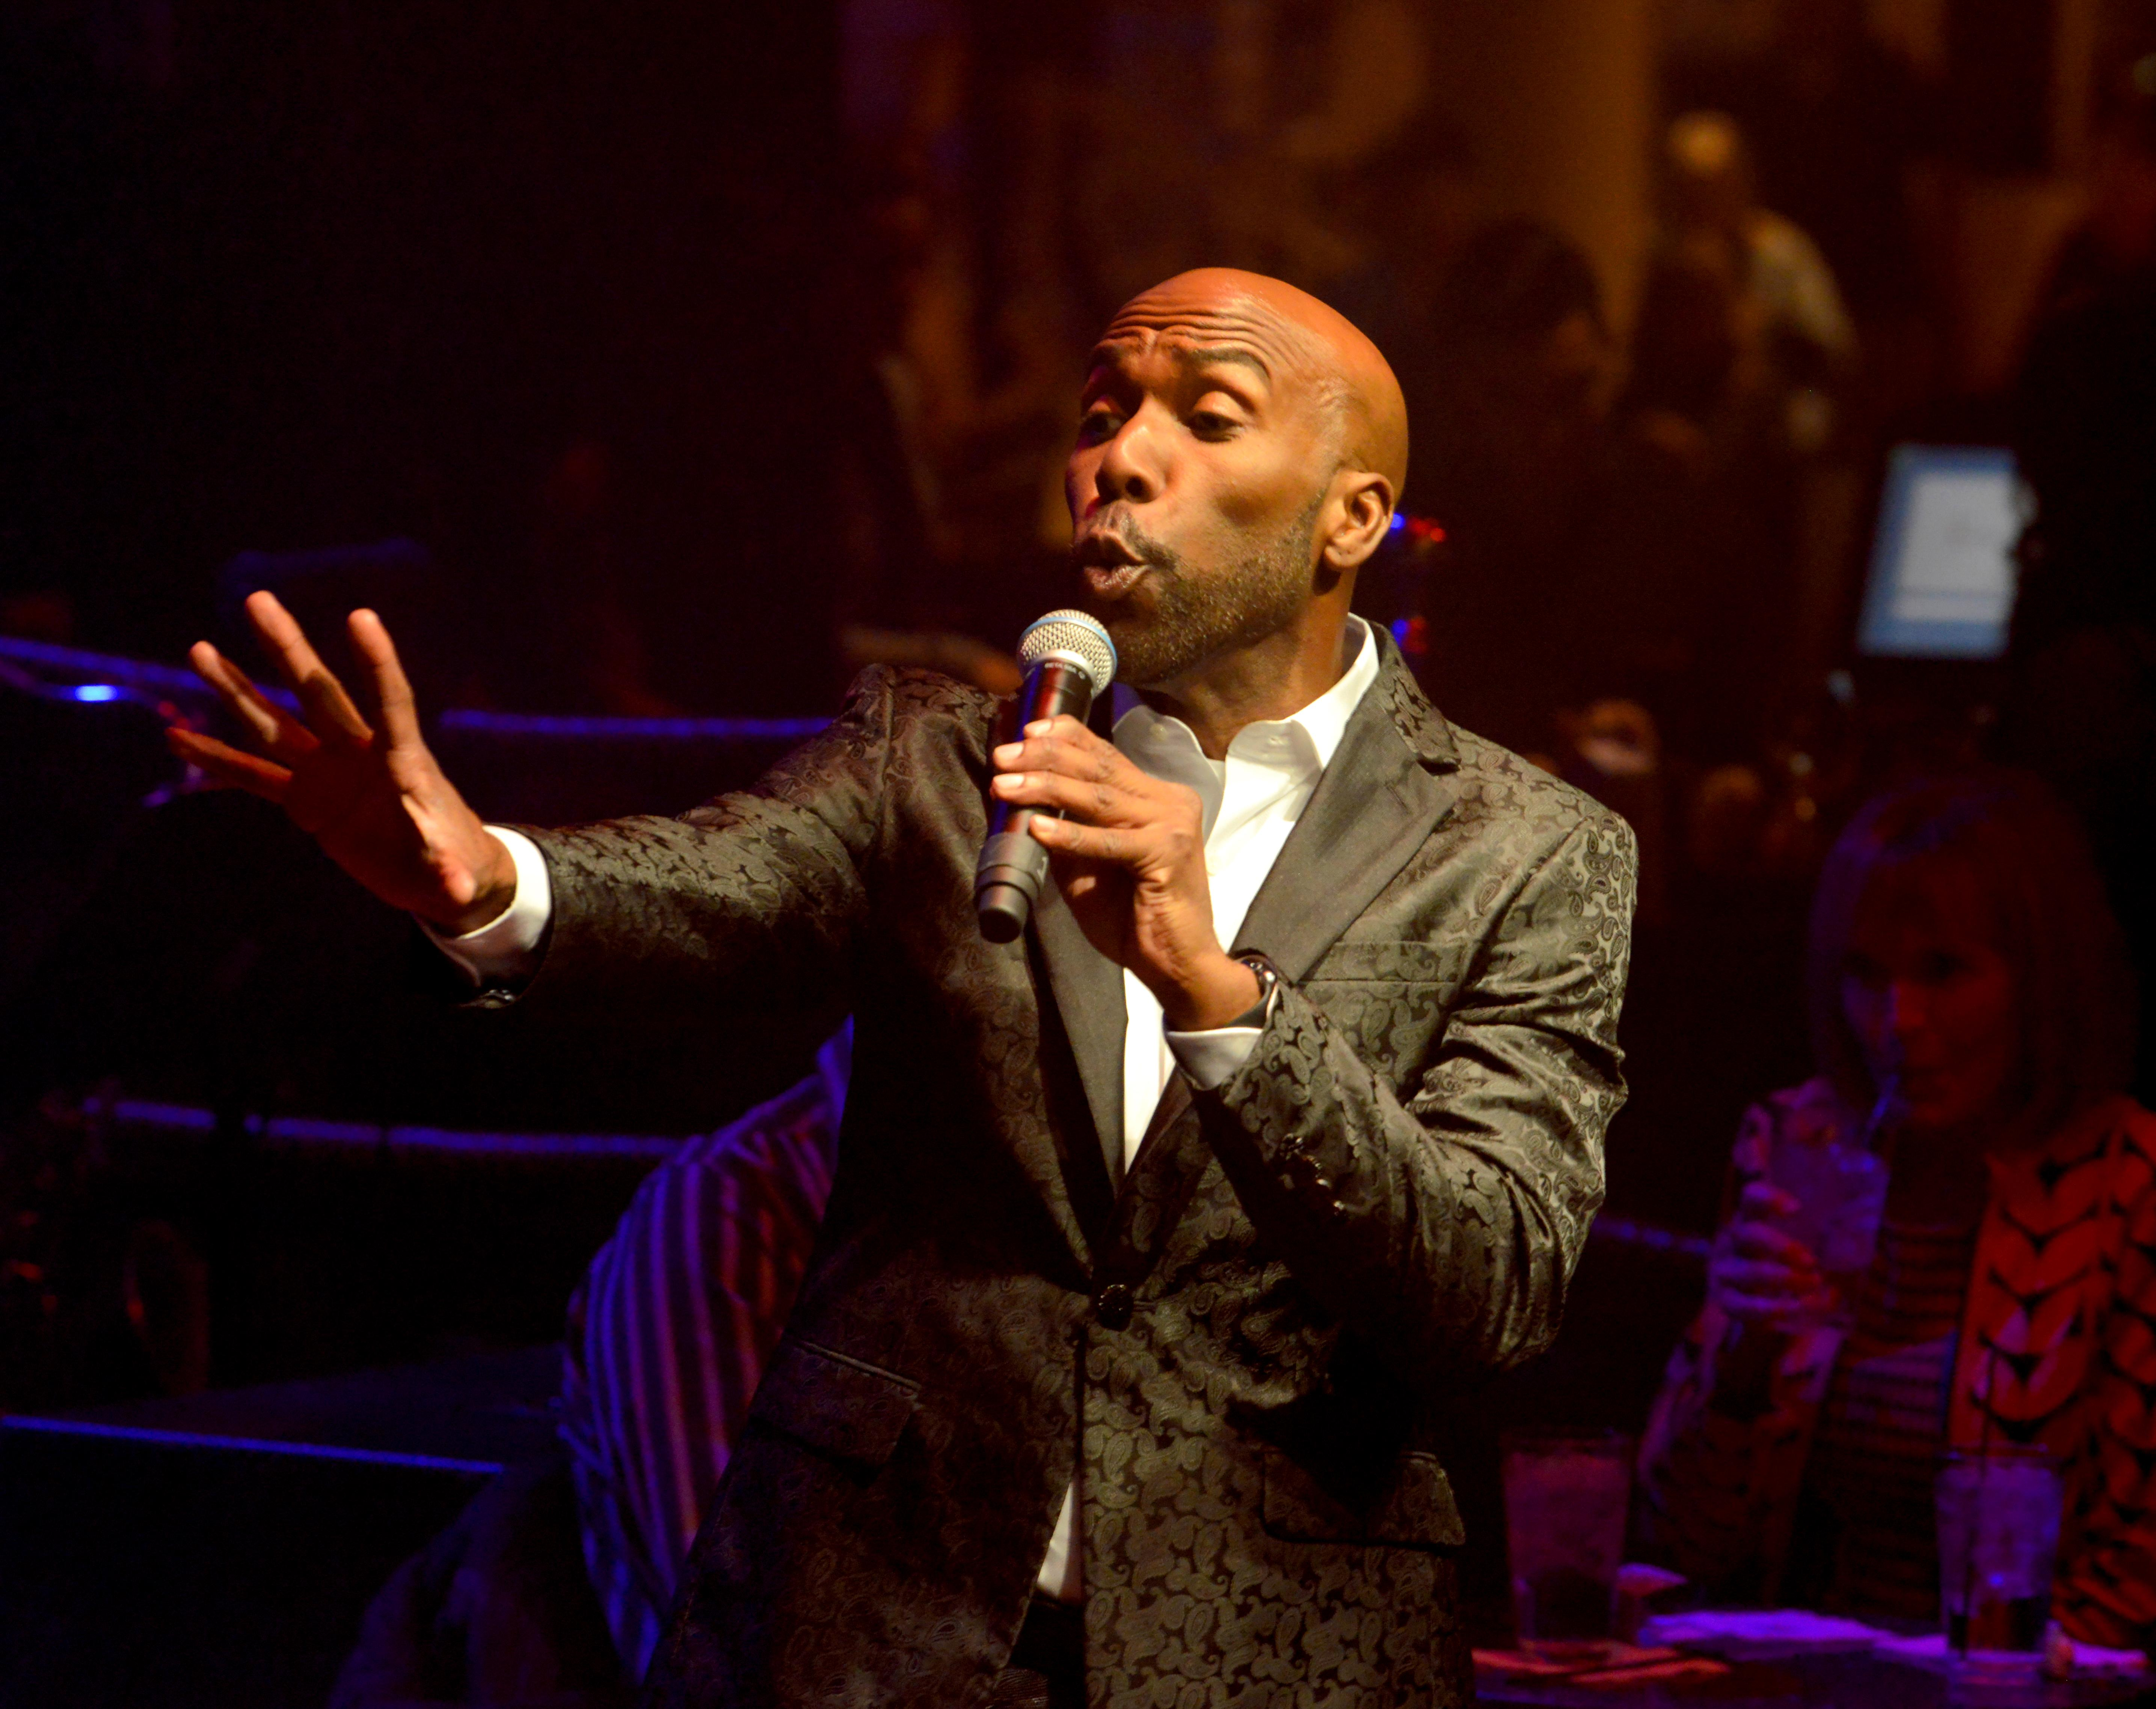 "Eric Jordan Young leads the audience in and out of musical numbers with comedy during the opening night of the musical review ""The Cocktail Cabaret"" at Cleopatra's Barge in Caesars Palace Hotel & Casino. Thursday, November 30, 2017. CREDIT: Glenn Pinkerton/Las Vegas News Bureau"